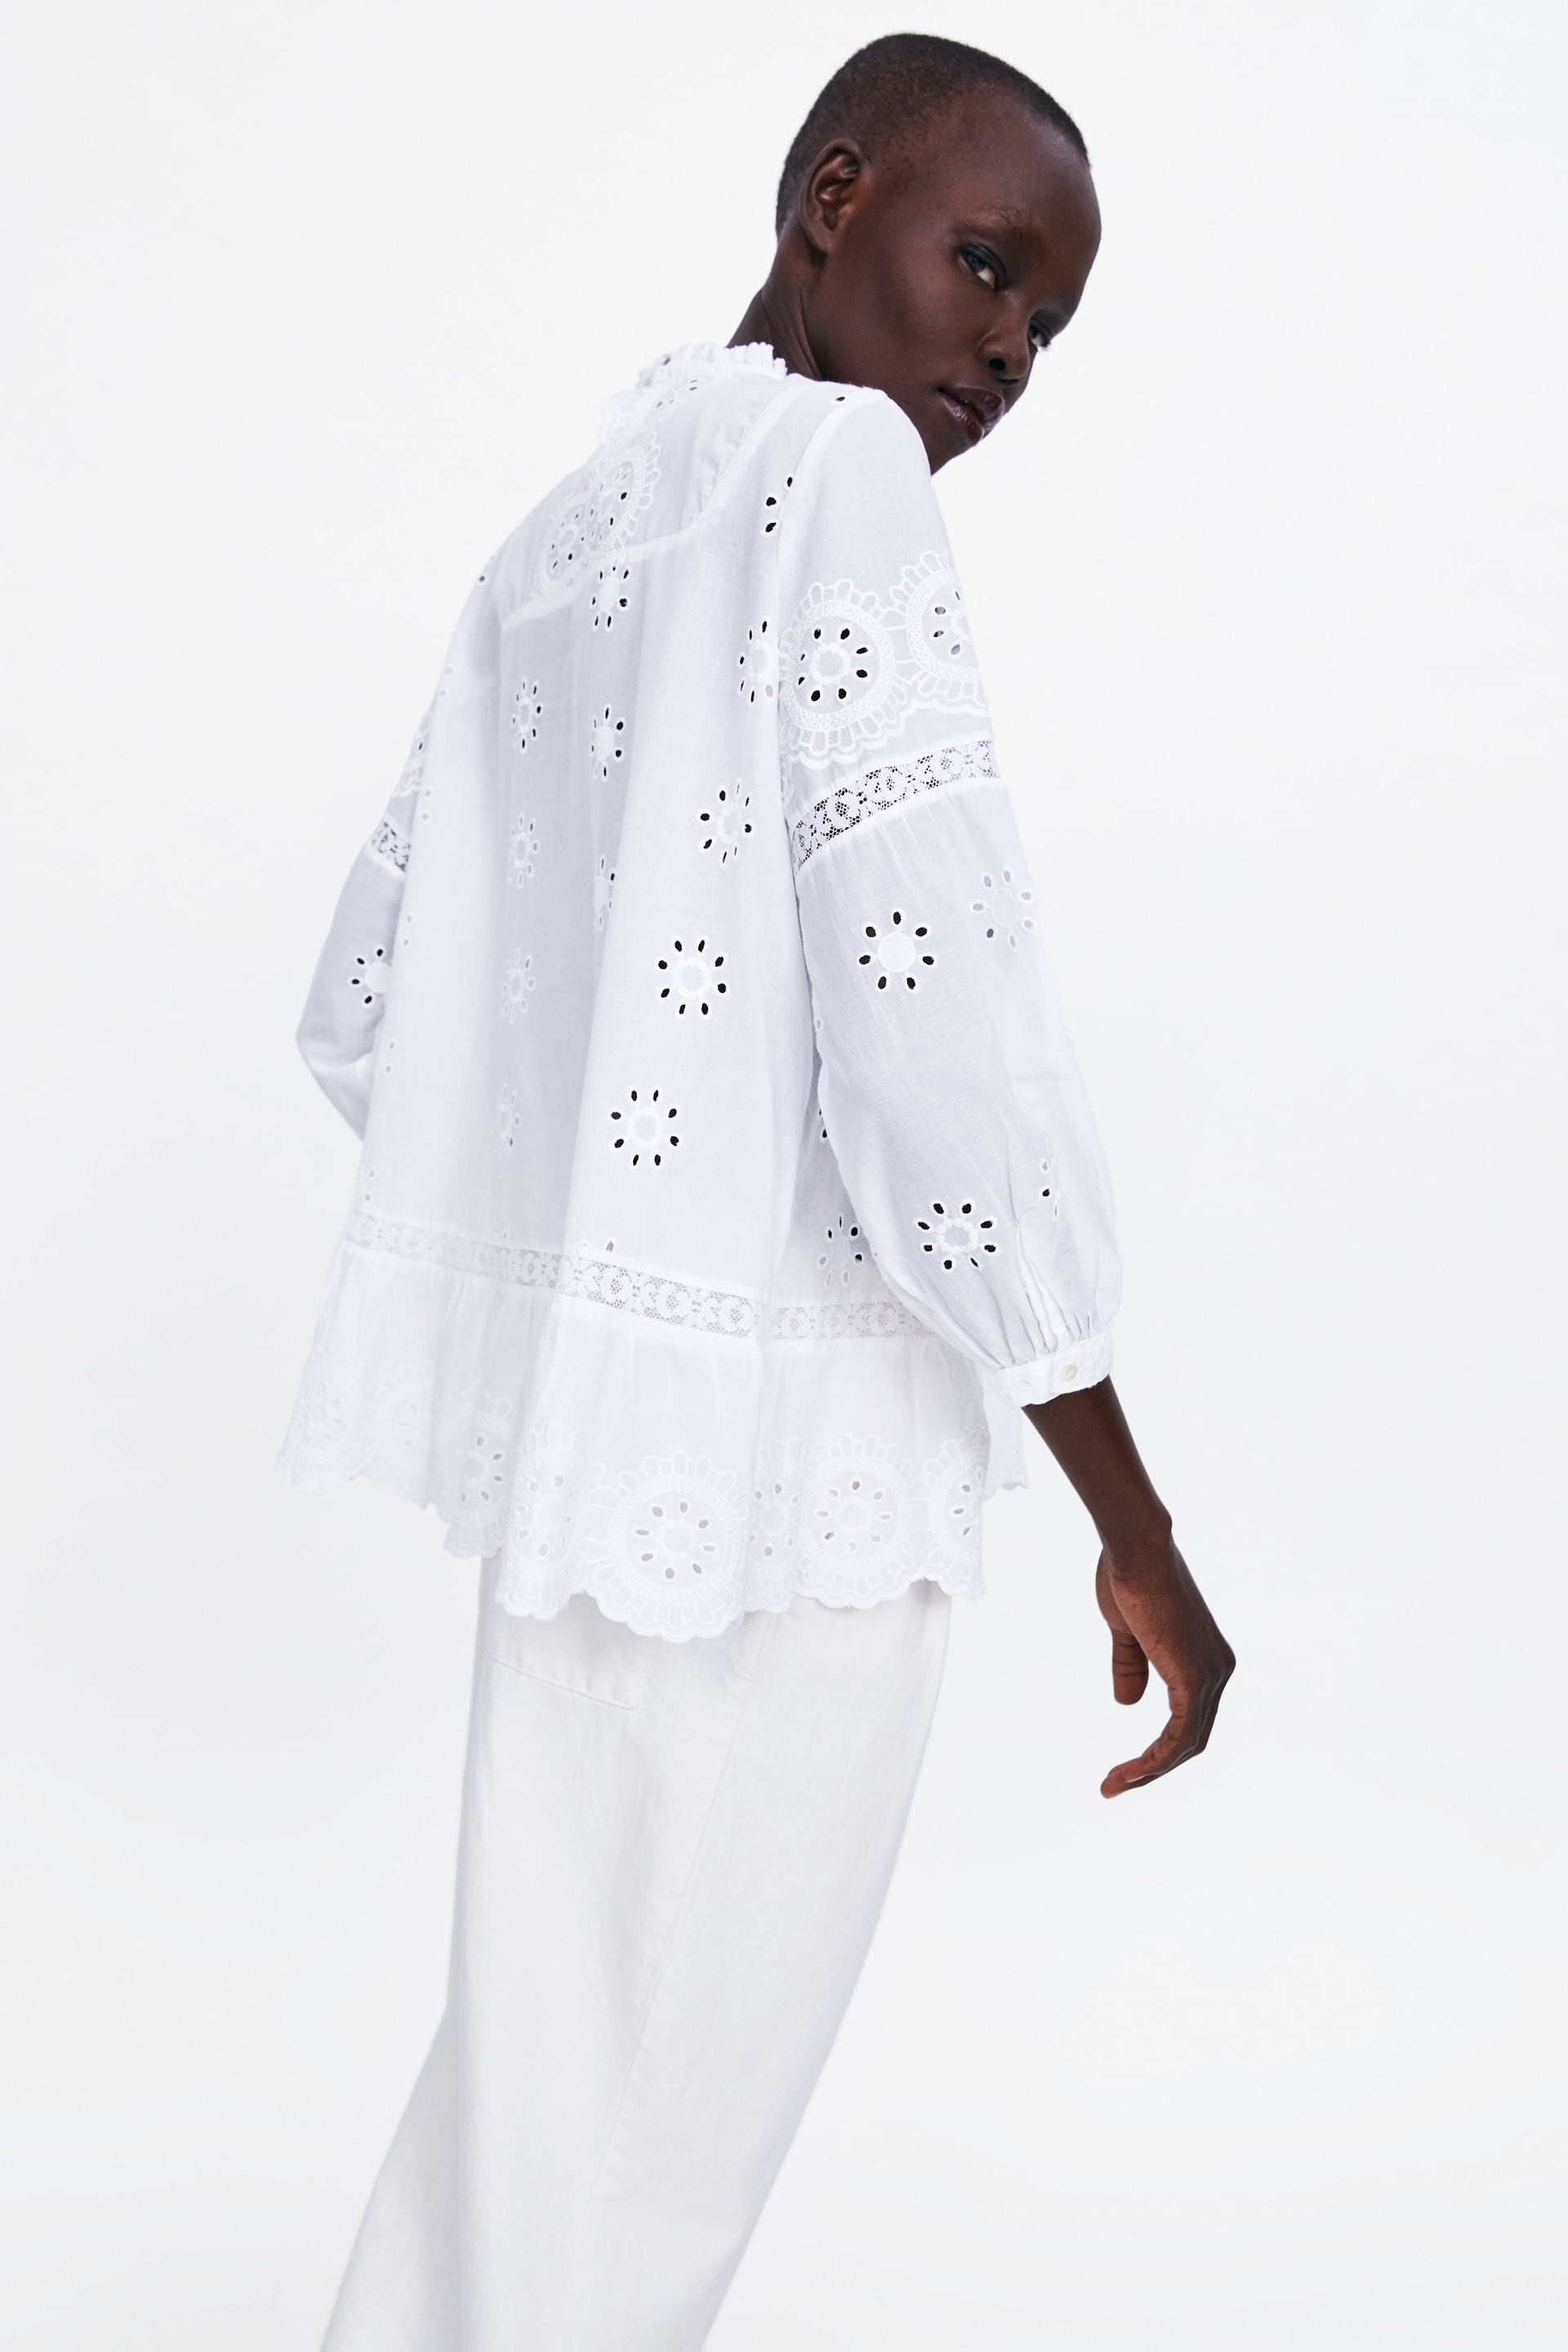 White Shirt - Must Have item